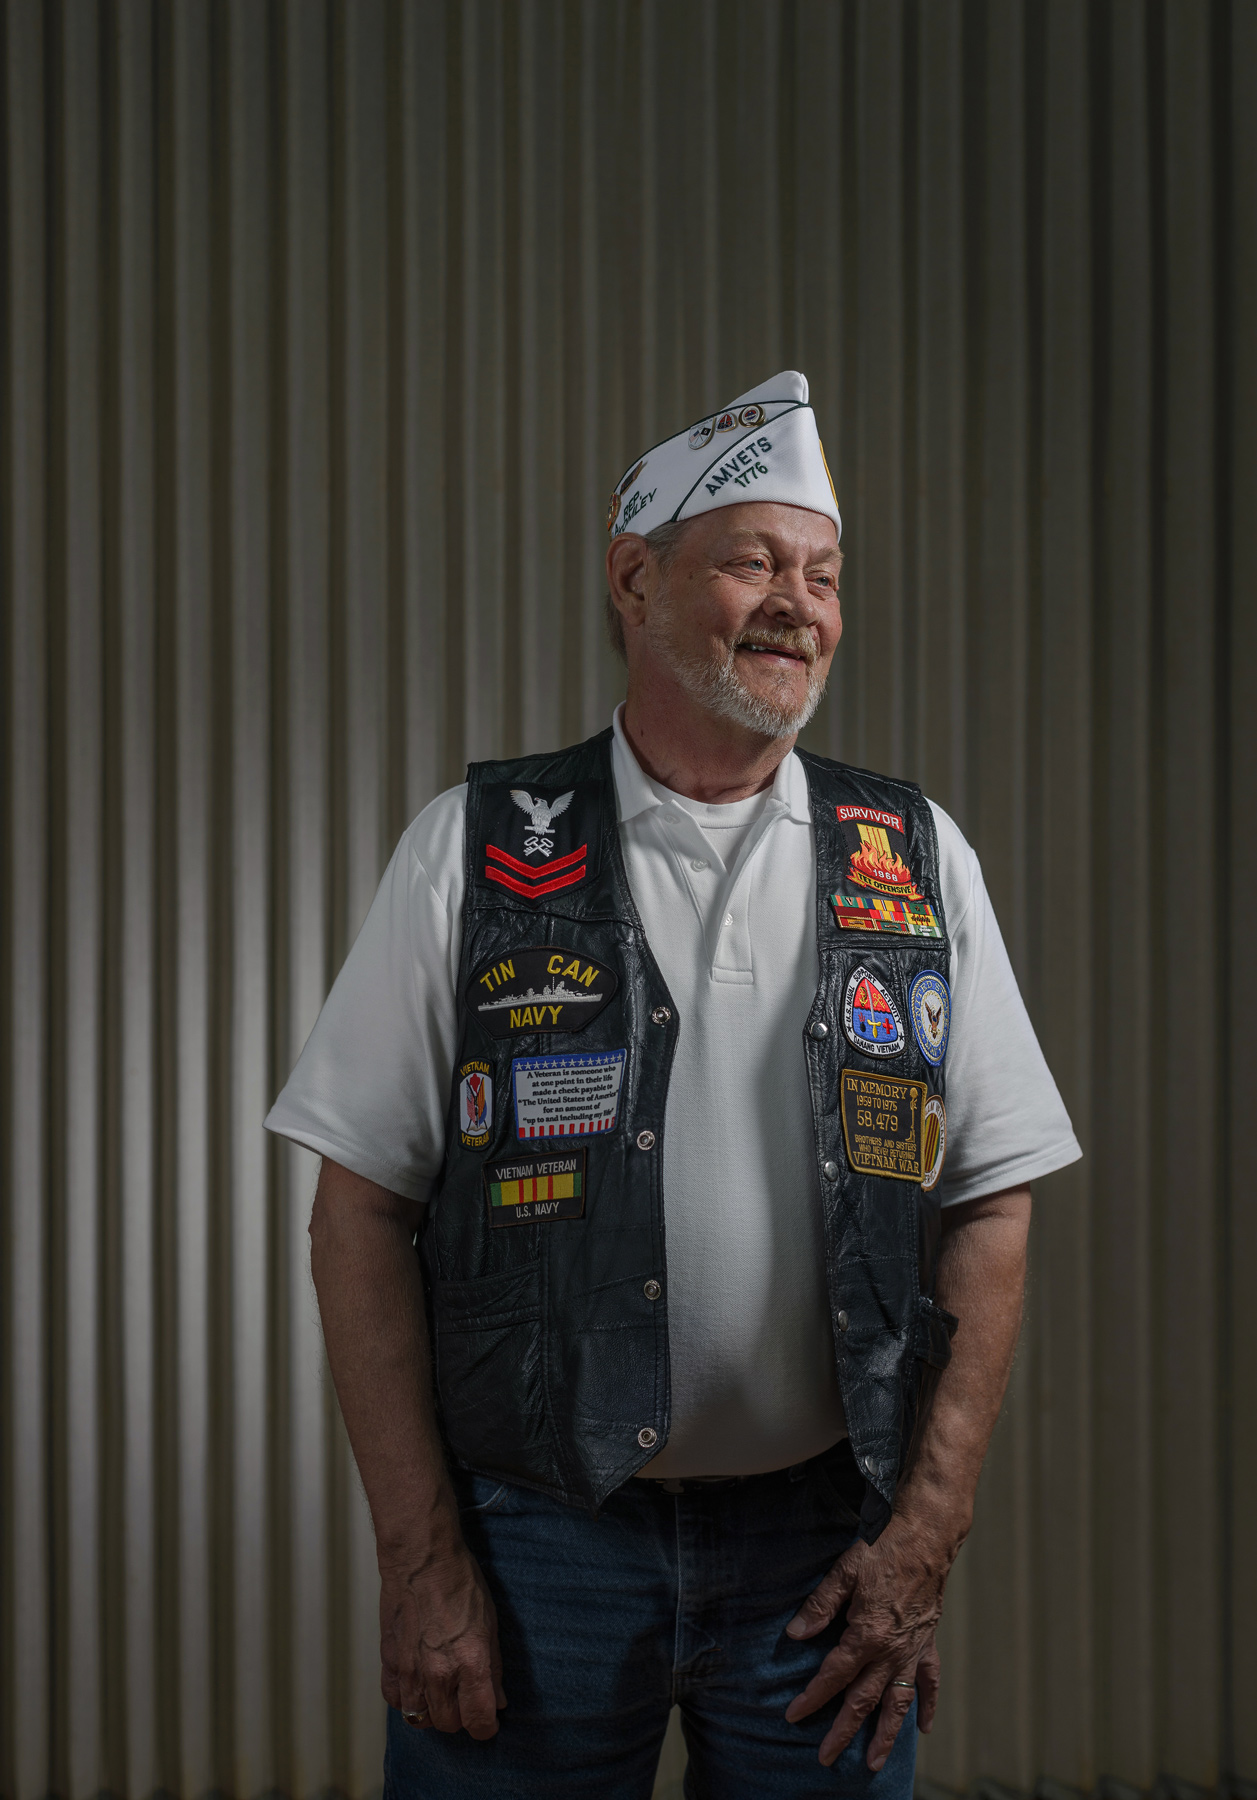 Veteran Healthcare, veterans affairs, Tennessee Valley, Murfreesboro, Nashville, suicide, portrait, photojournalism, reportage, documentary, National Public Radio, NPR, Kristina Krug, editorial photographer, woman, owned, business, women in photography